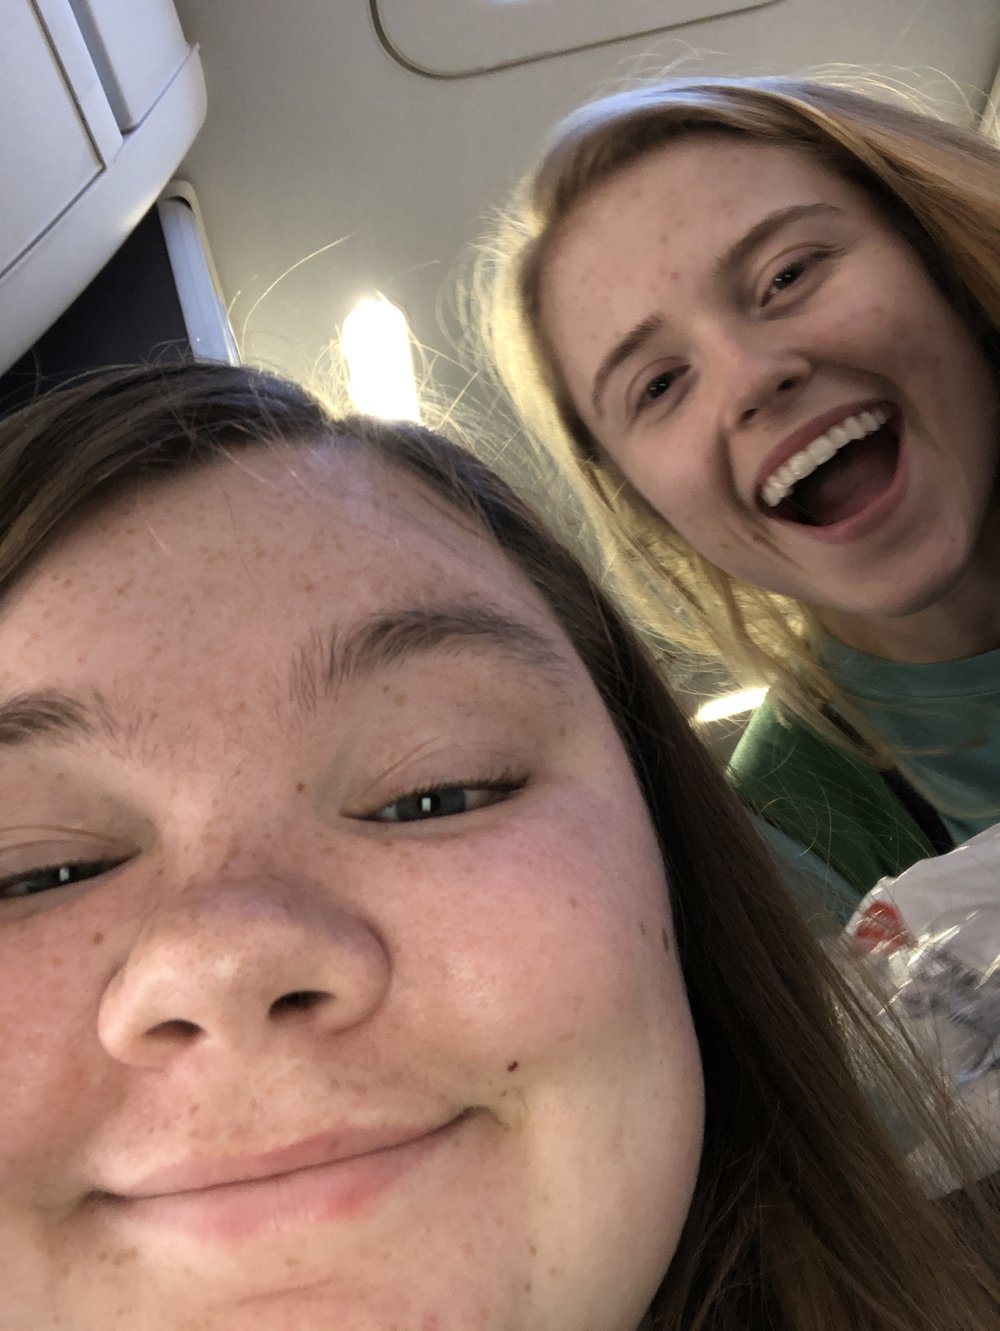 Becca Lamb and Bekah Wommack are THRILLED to finally be off of the plane and in Puerto Rico!